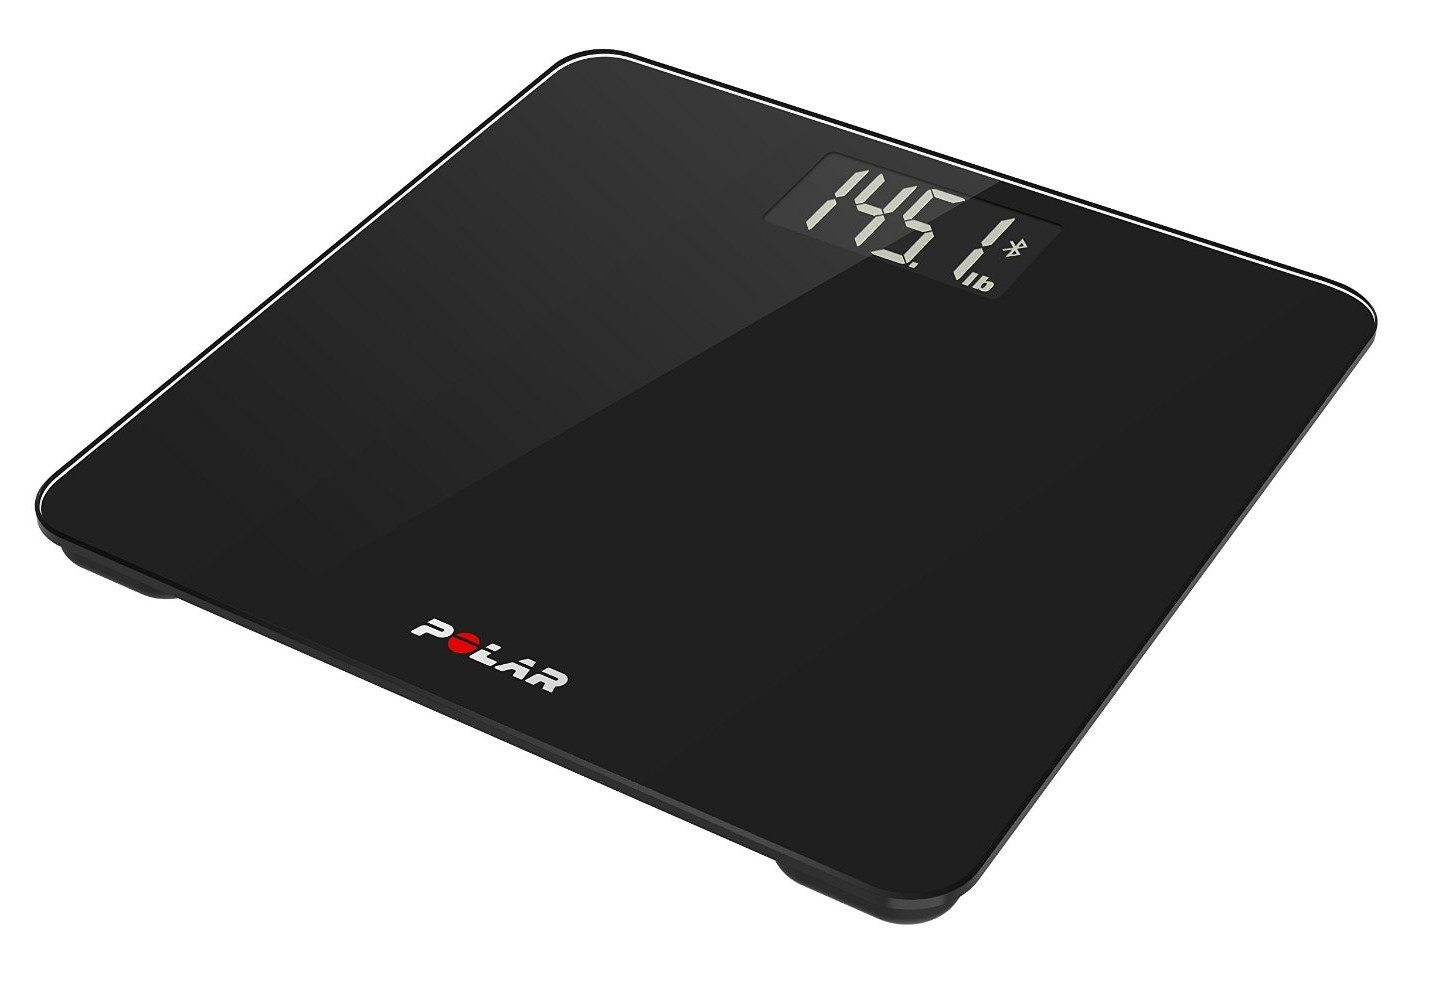 polar launches its own smart scale 3 - Polar launches its own smart scale